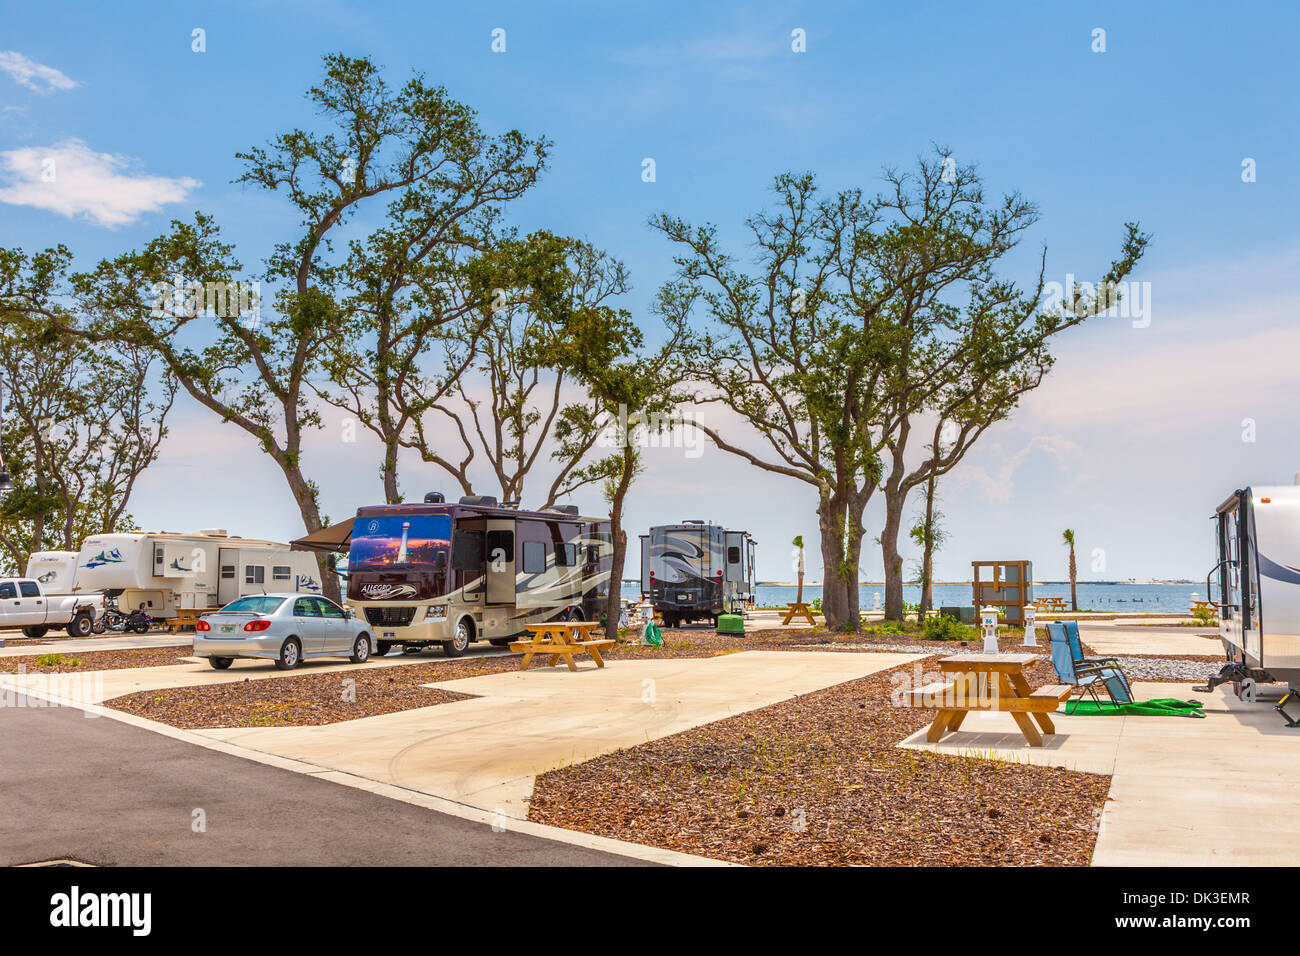 Motorhomes and travel trailers at St. Rosa RV Resort waterfront campground in Navarre, Florida - Stock Image